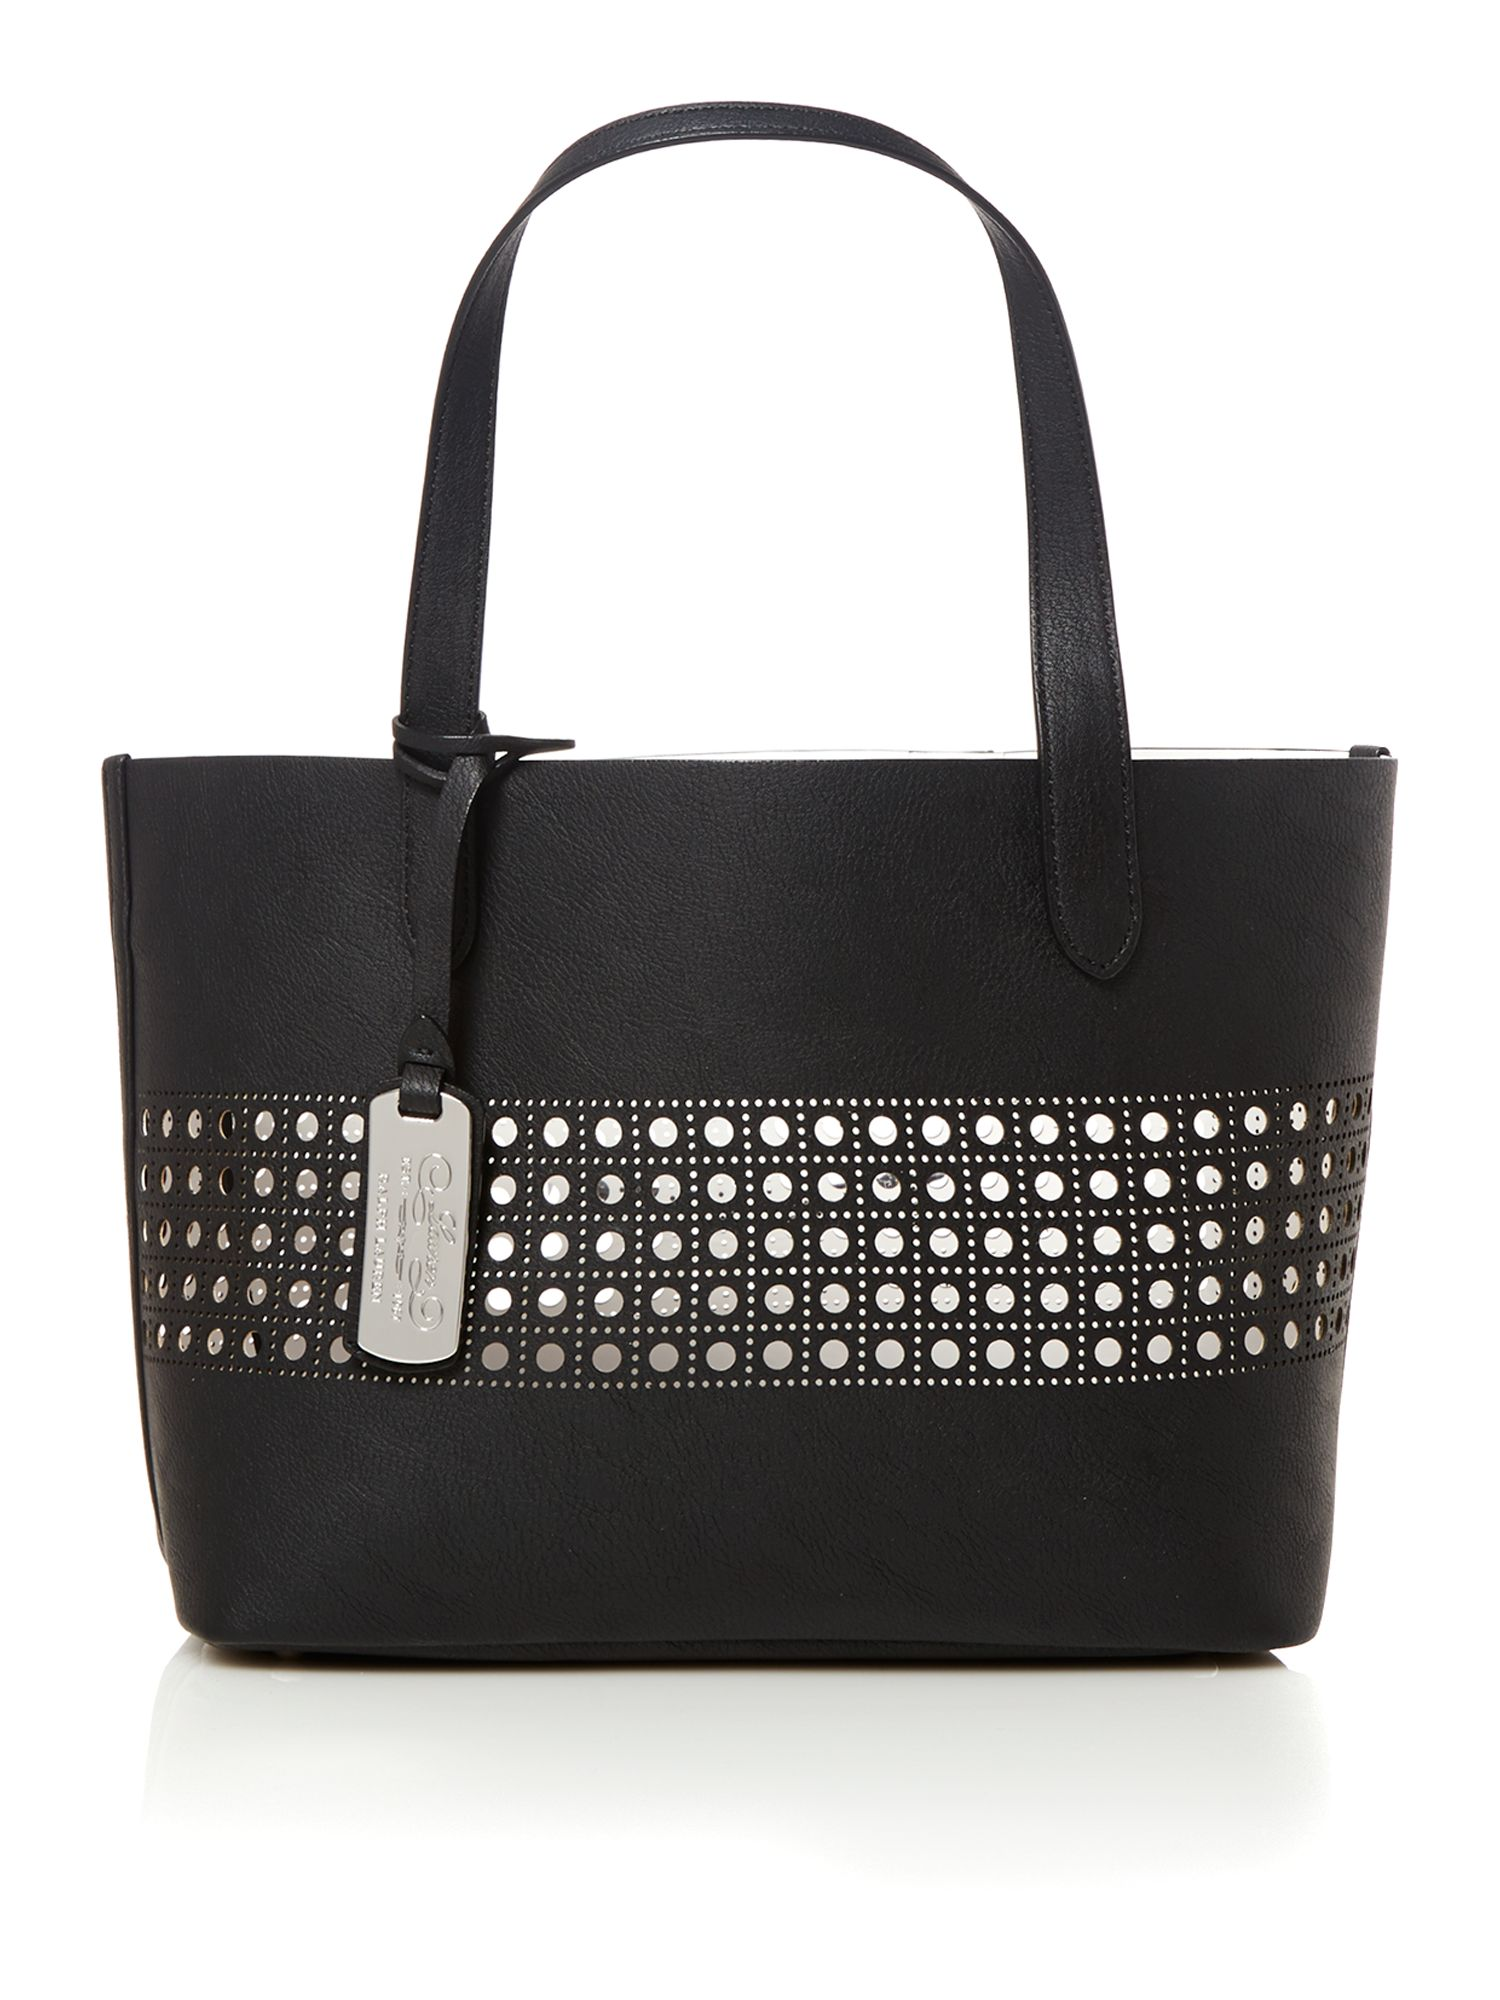 Leighton black small tote bag